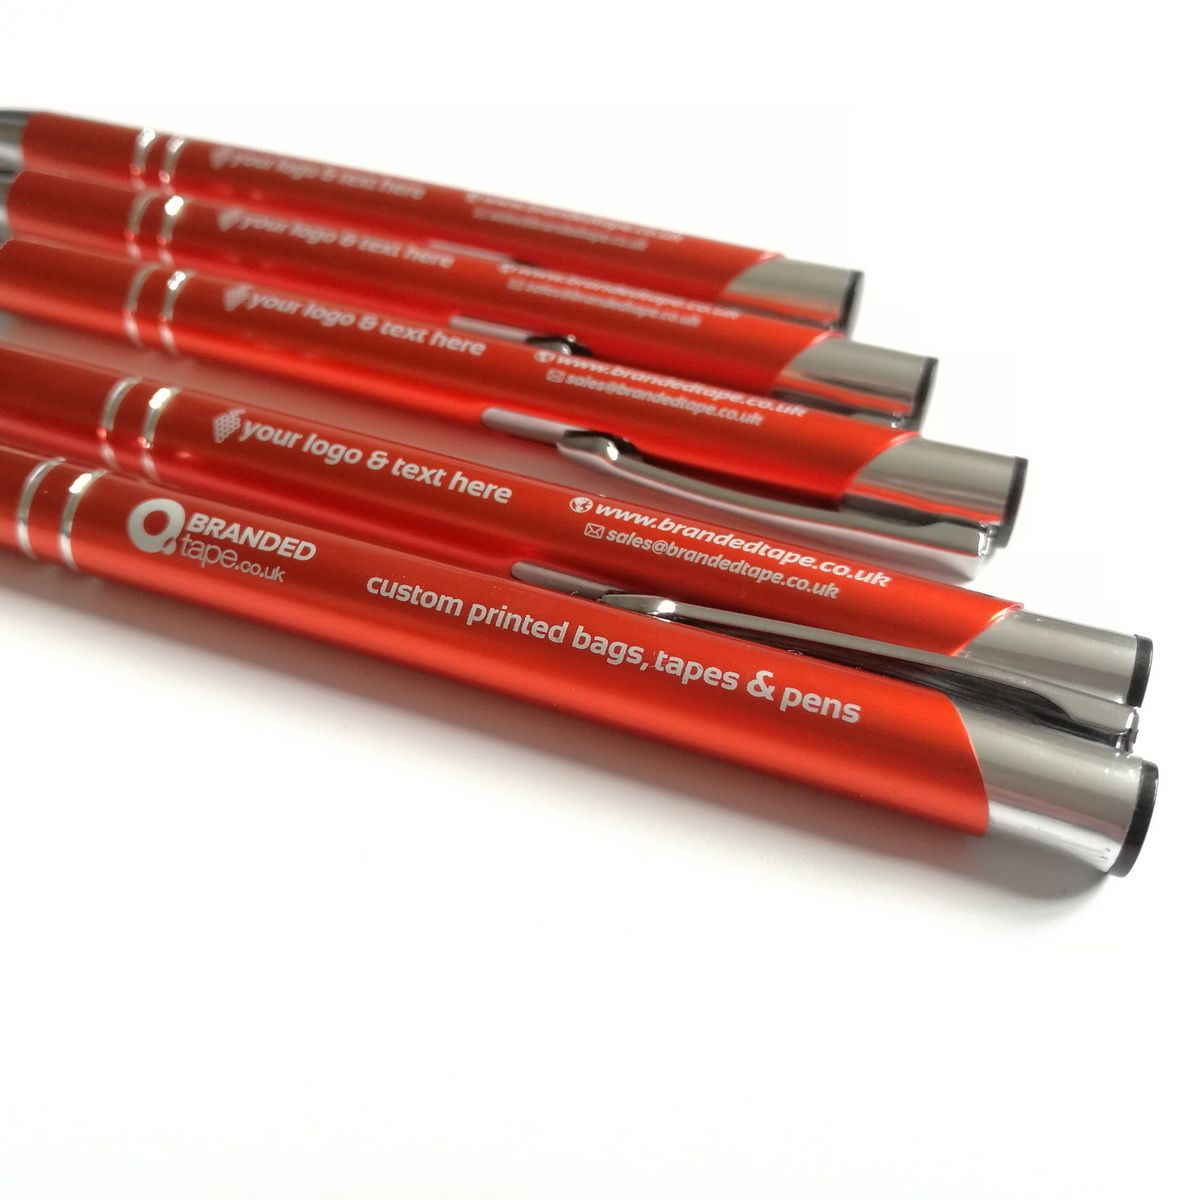 Custom-Printed-Ballpens-Engraved-Southampton-UK-Promotional-Pens-Keyrings-Notepads-001